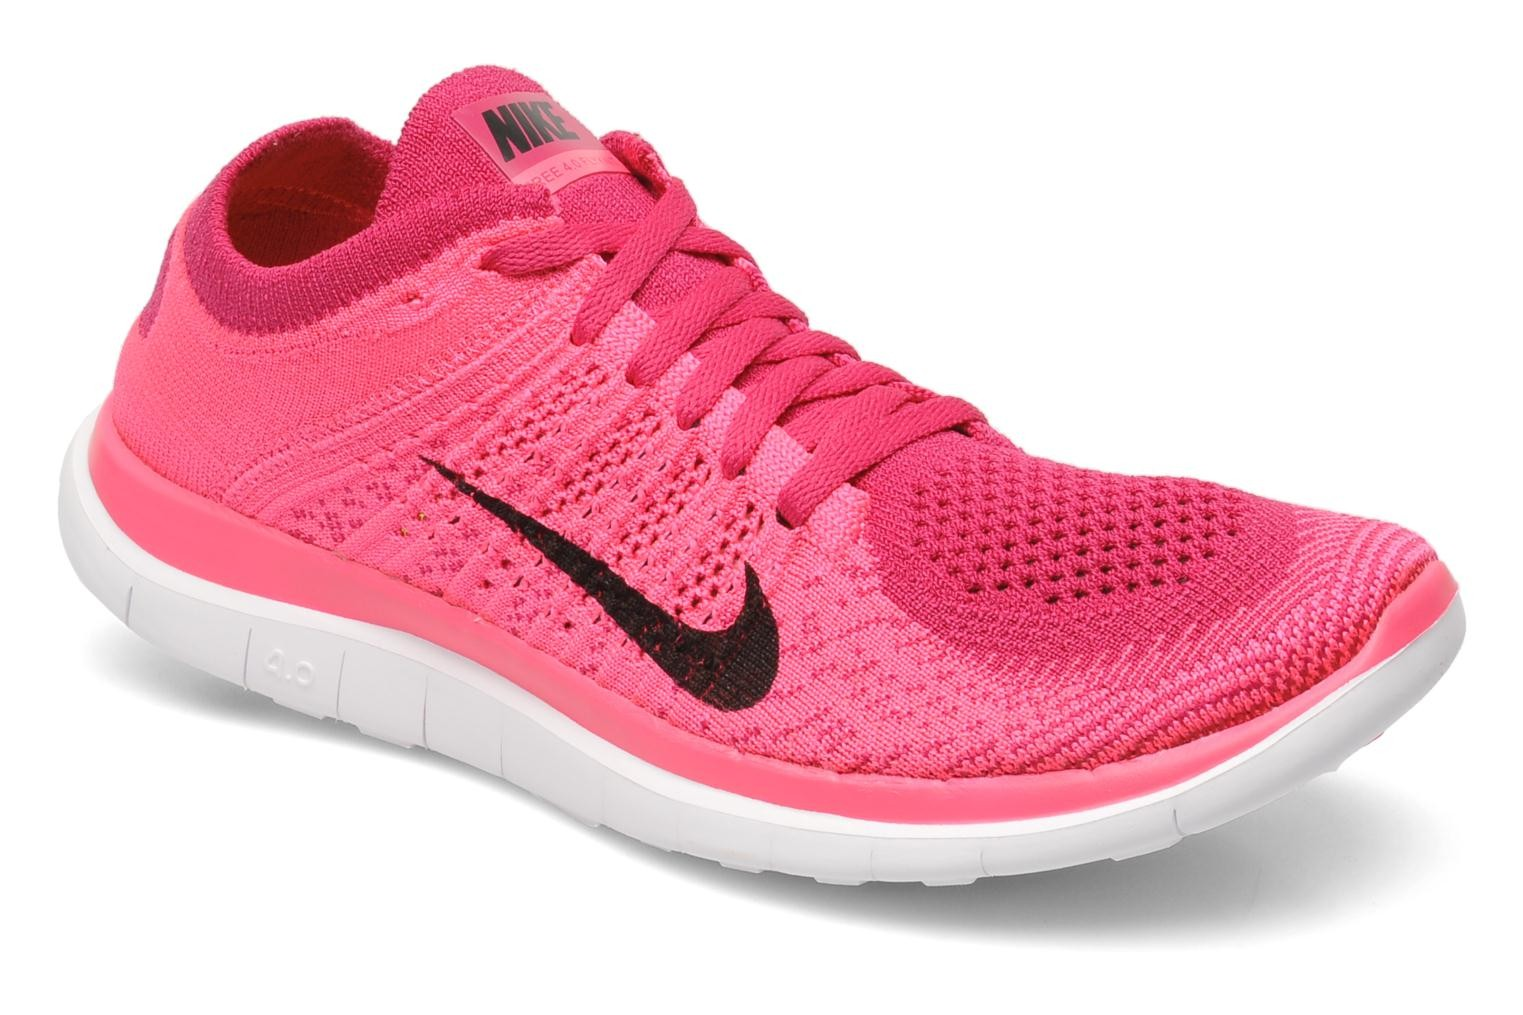 Nike WMNS Free 4.0 Flyknit Pink Flash/Black-Fireberry-White Women's Running Shoe